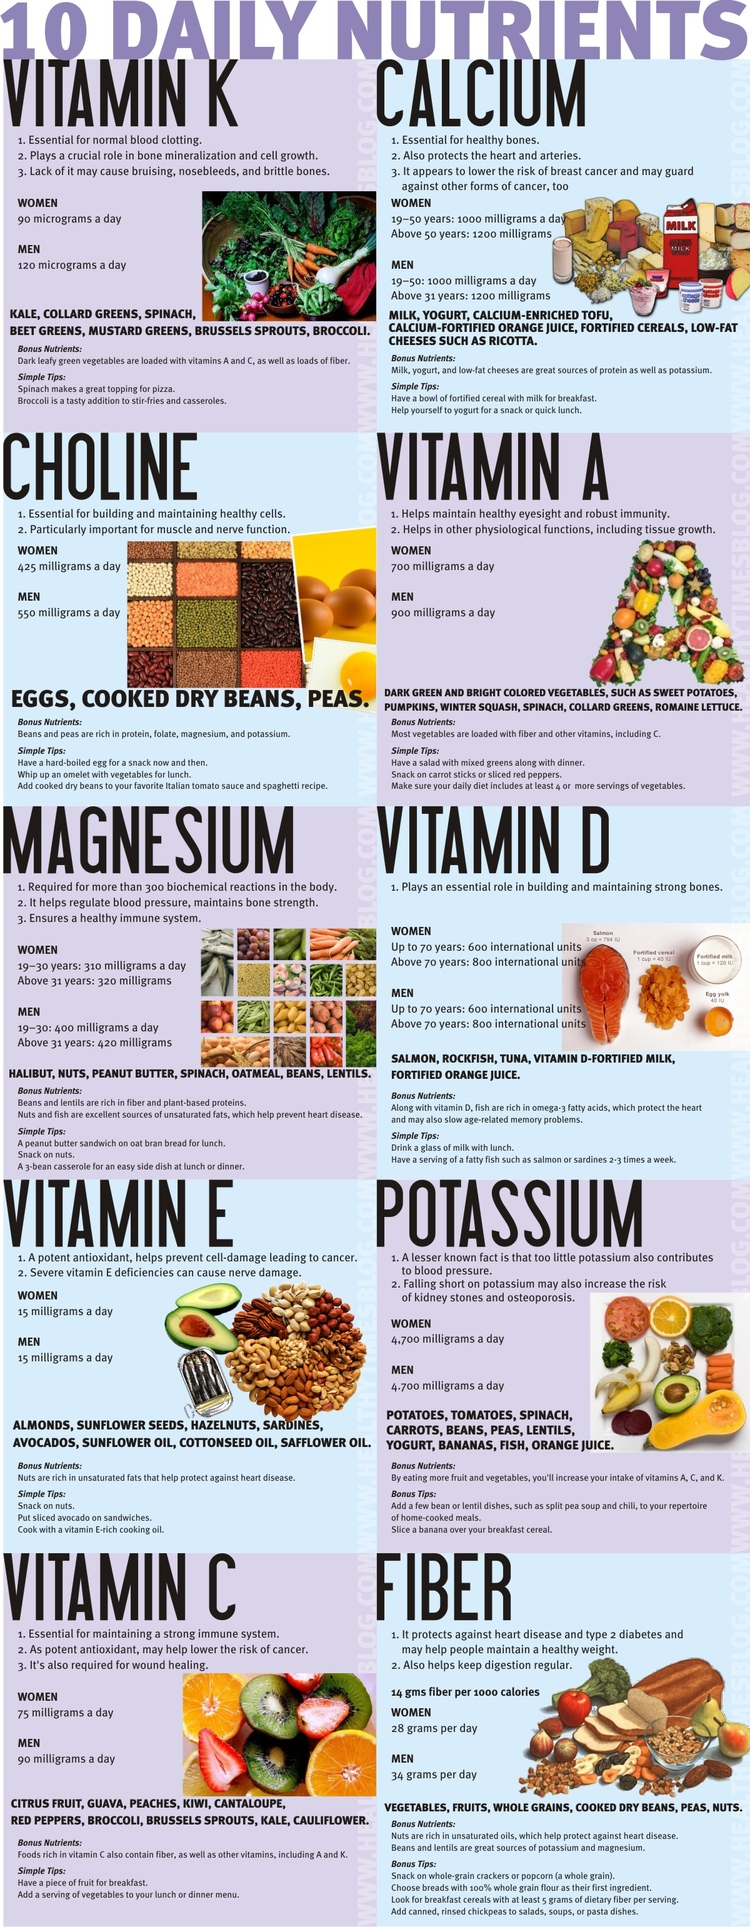 North Adams Chiropractor | North Adams chiropractic 10 Daily Nutrients We All Need |  MA |